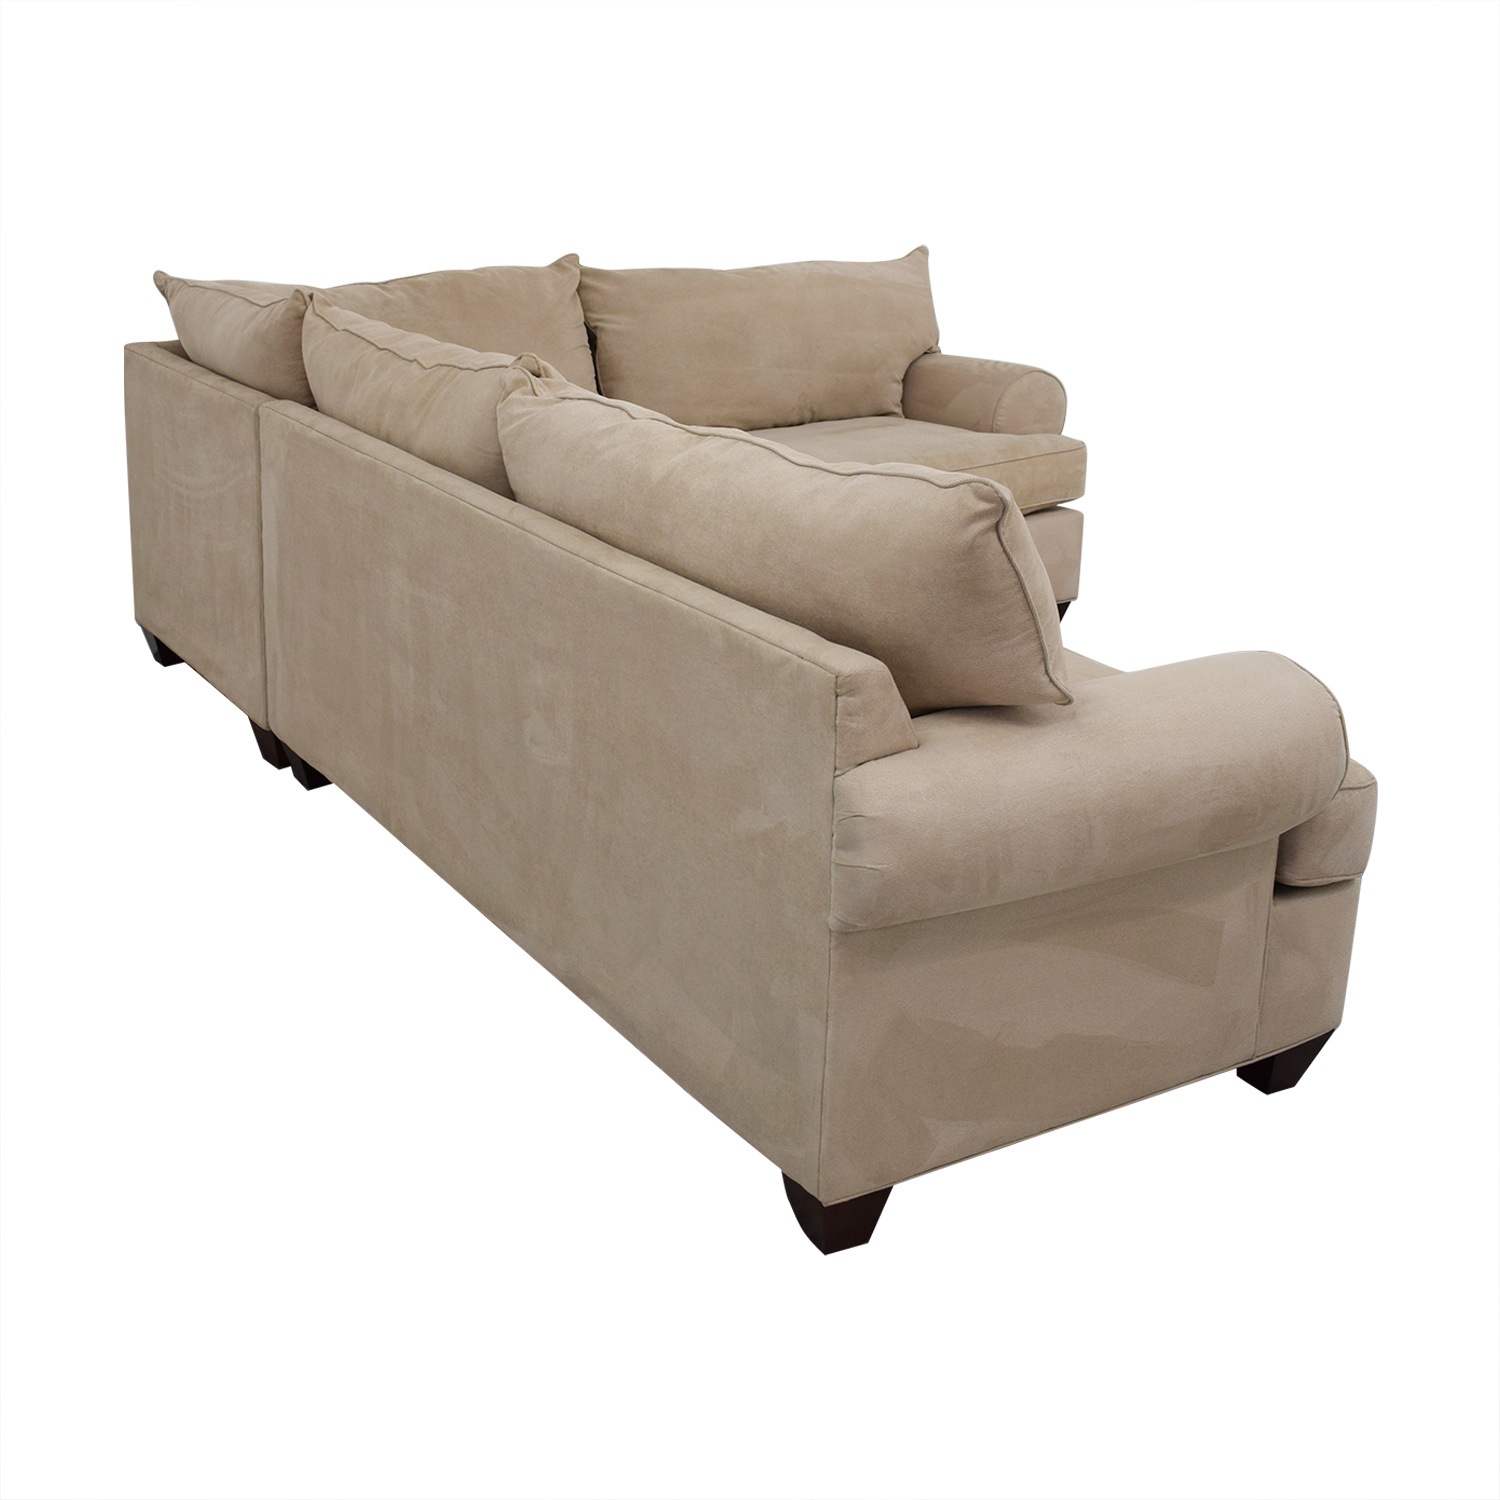 Raymour & Flanigan Two Piece Sectional / Sofas